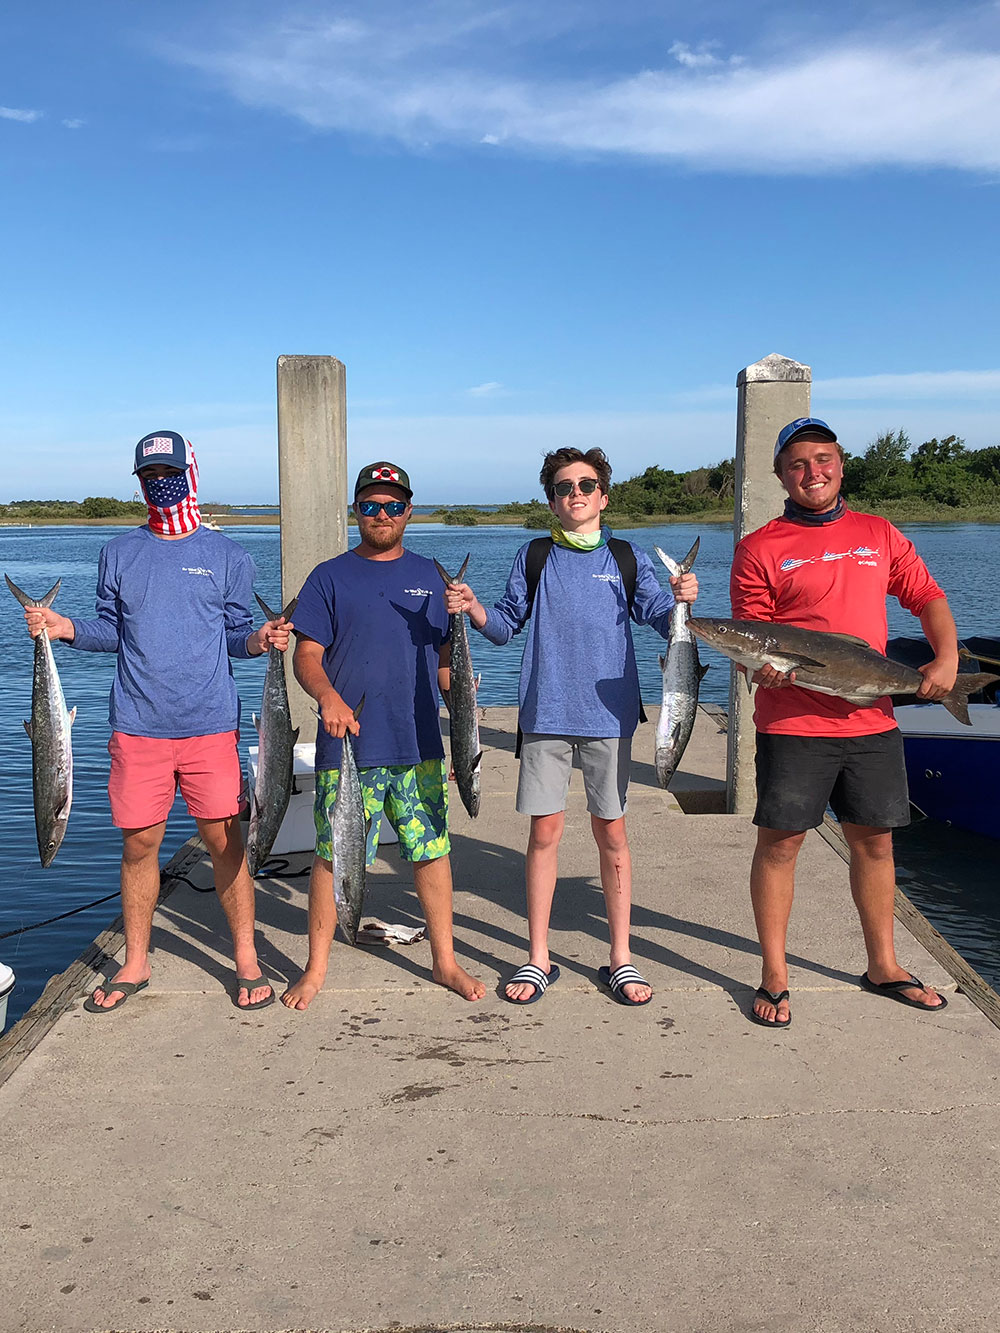 group of 4 men each holding fish while standing on a dock